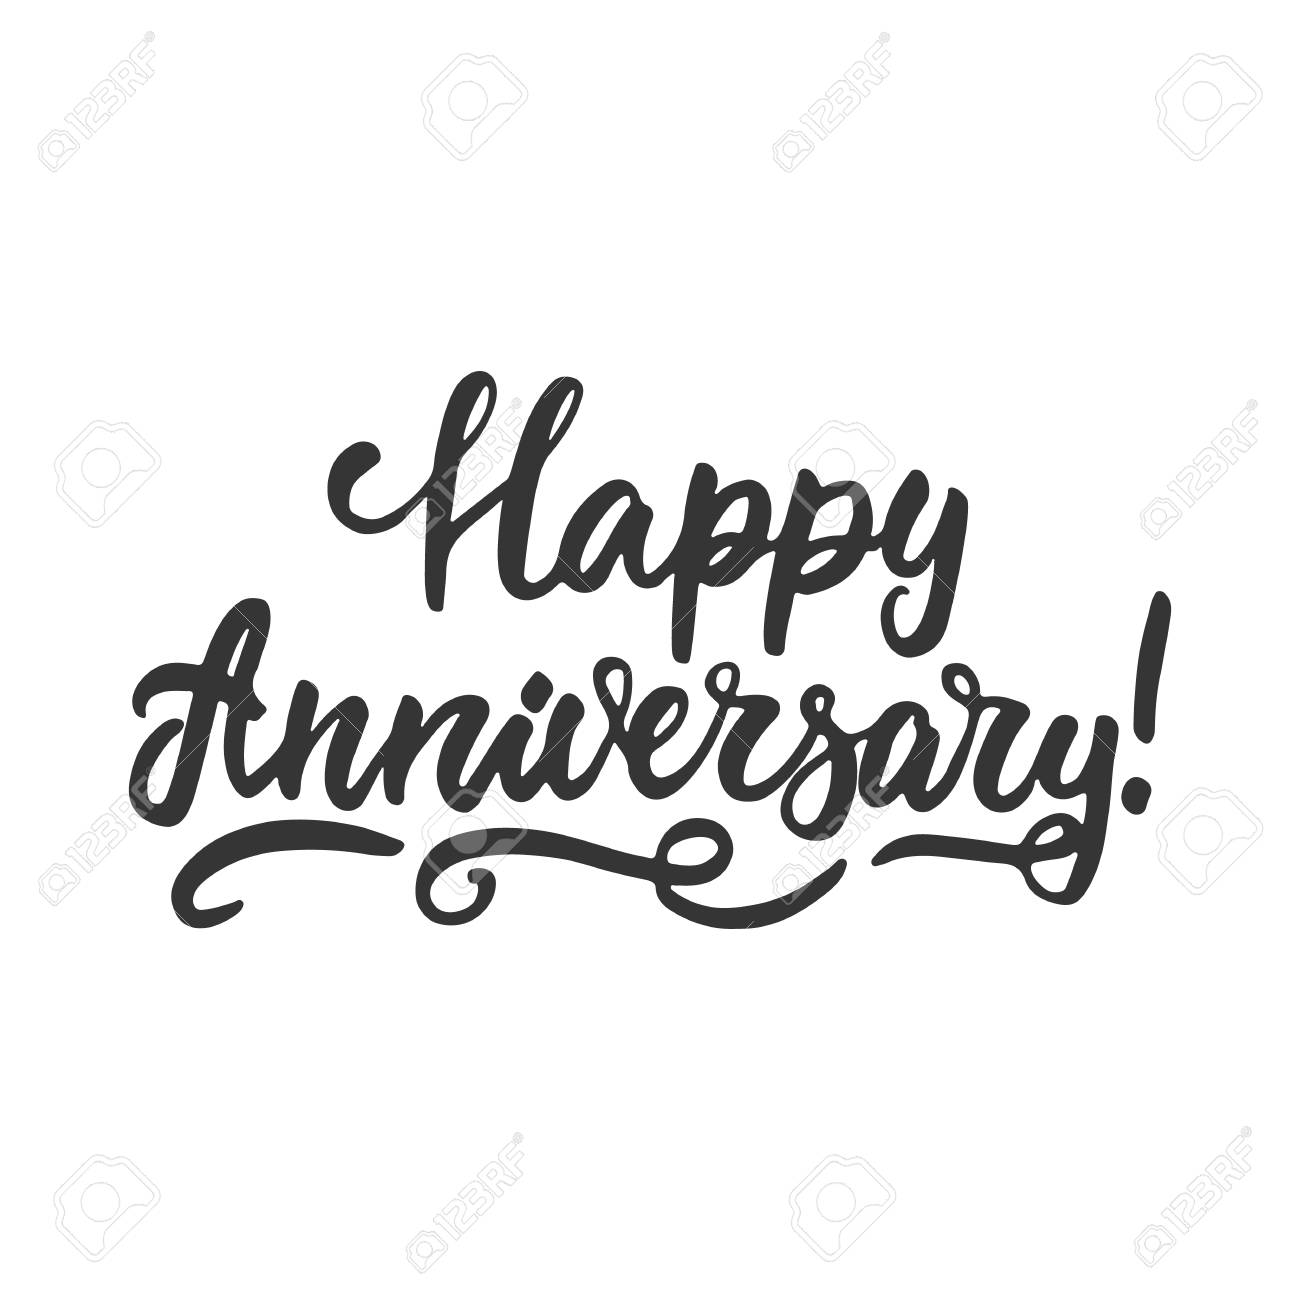 happy anniversary hand drawn lettering phrase isolated on the white background fun brush ink